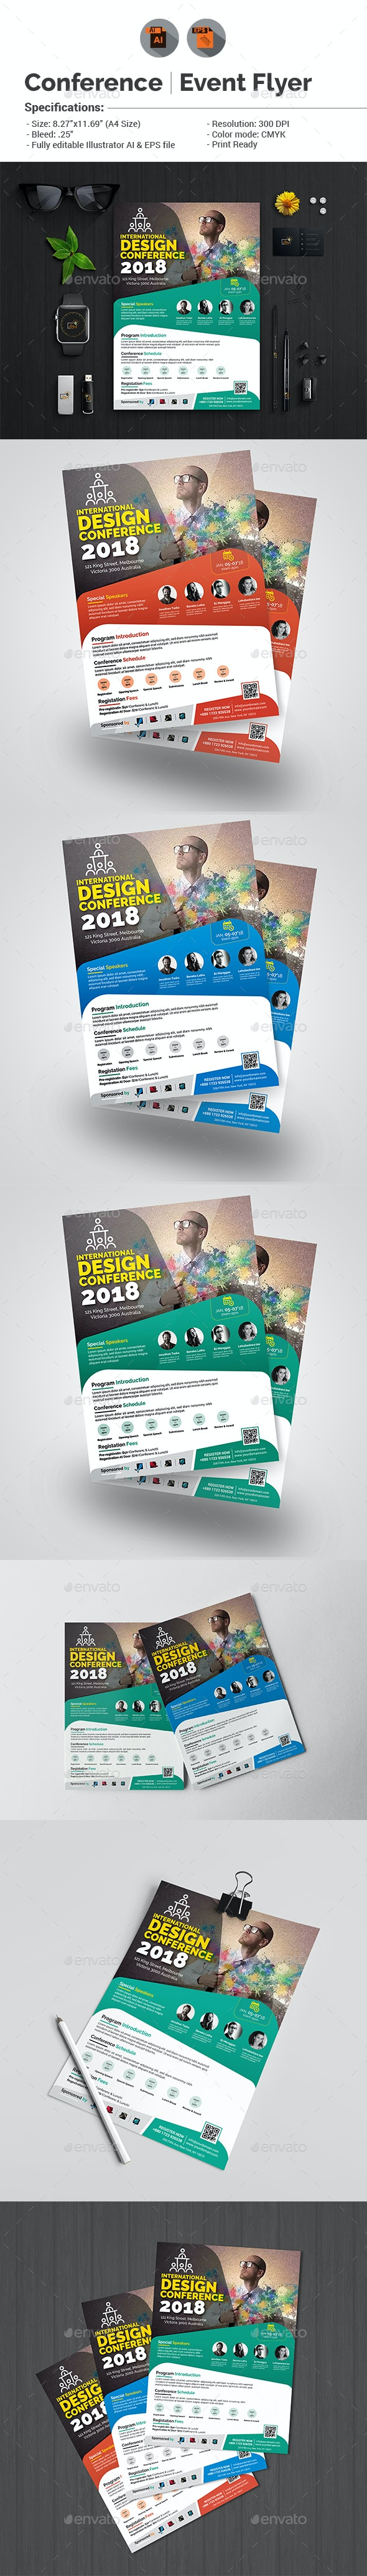 Conference / Event Flyer Template - Events Flyers